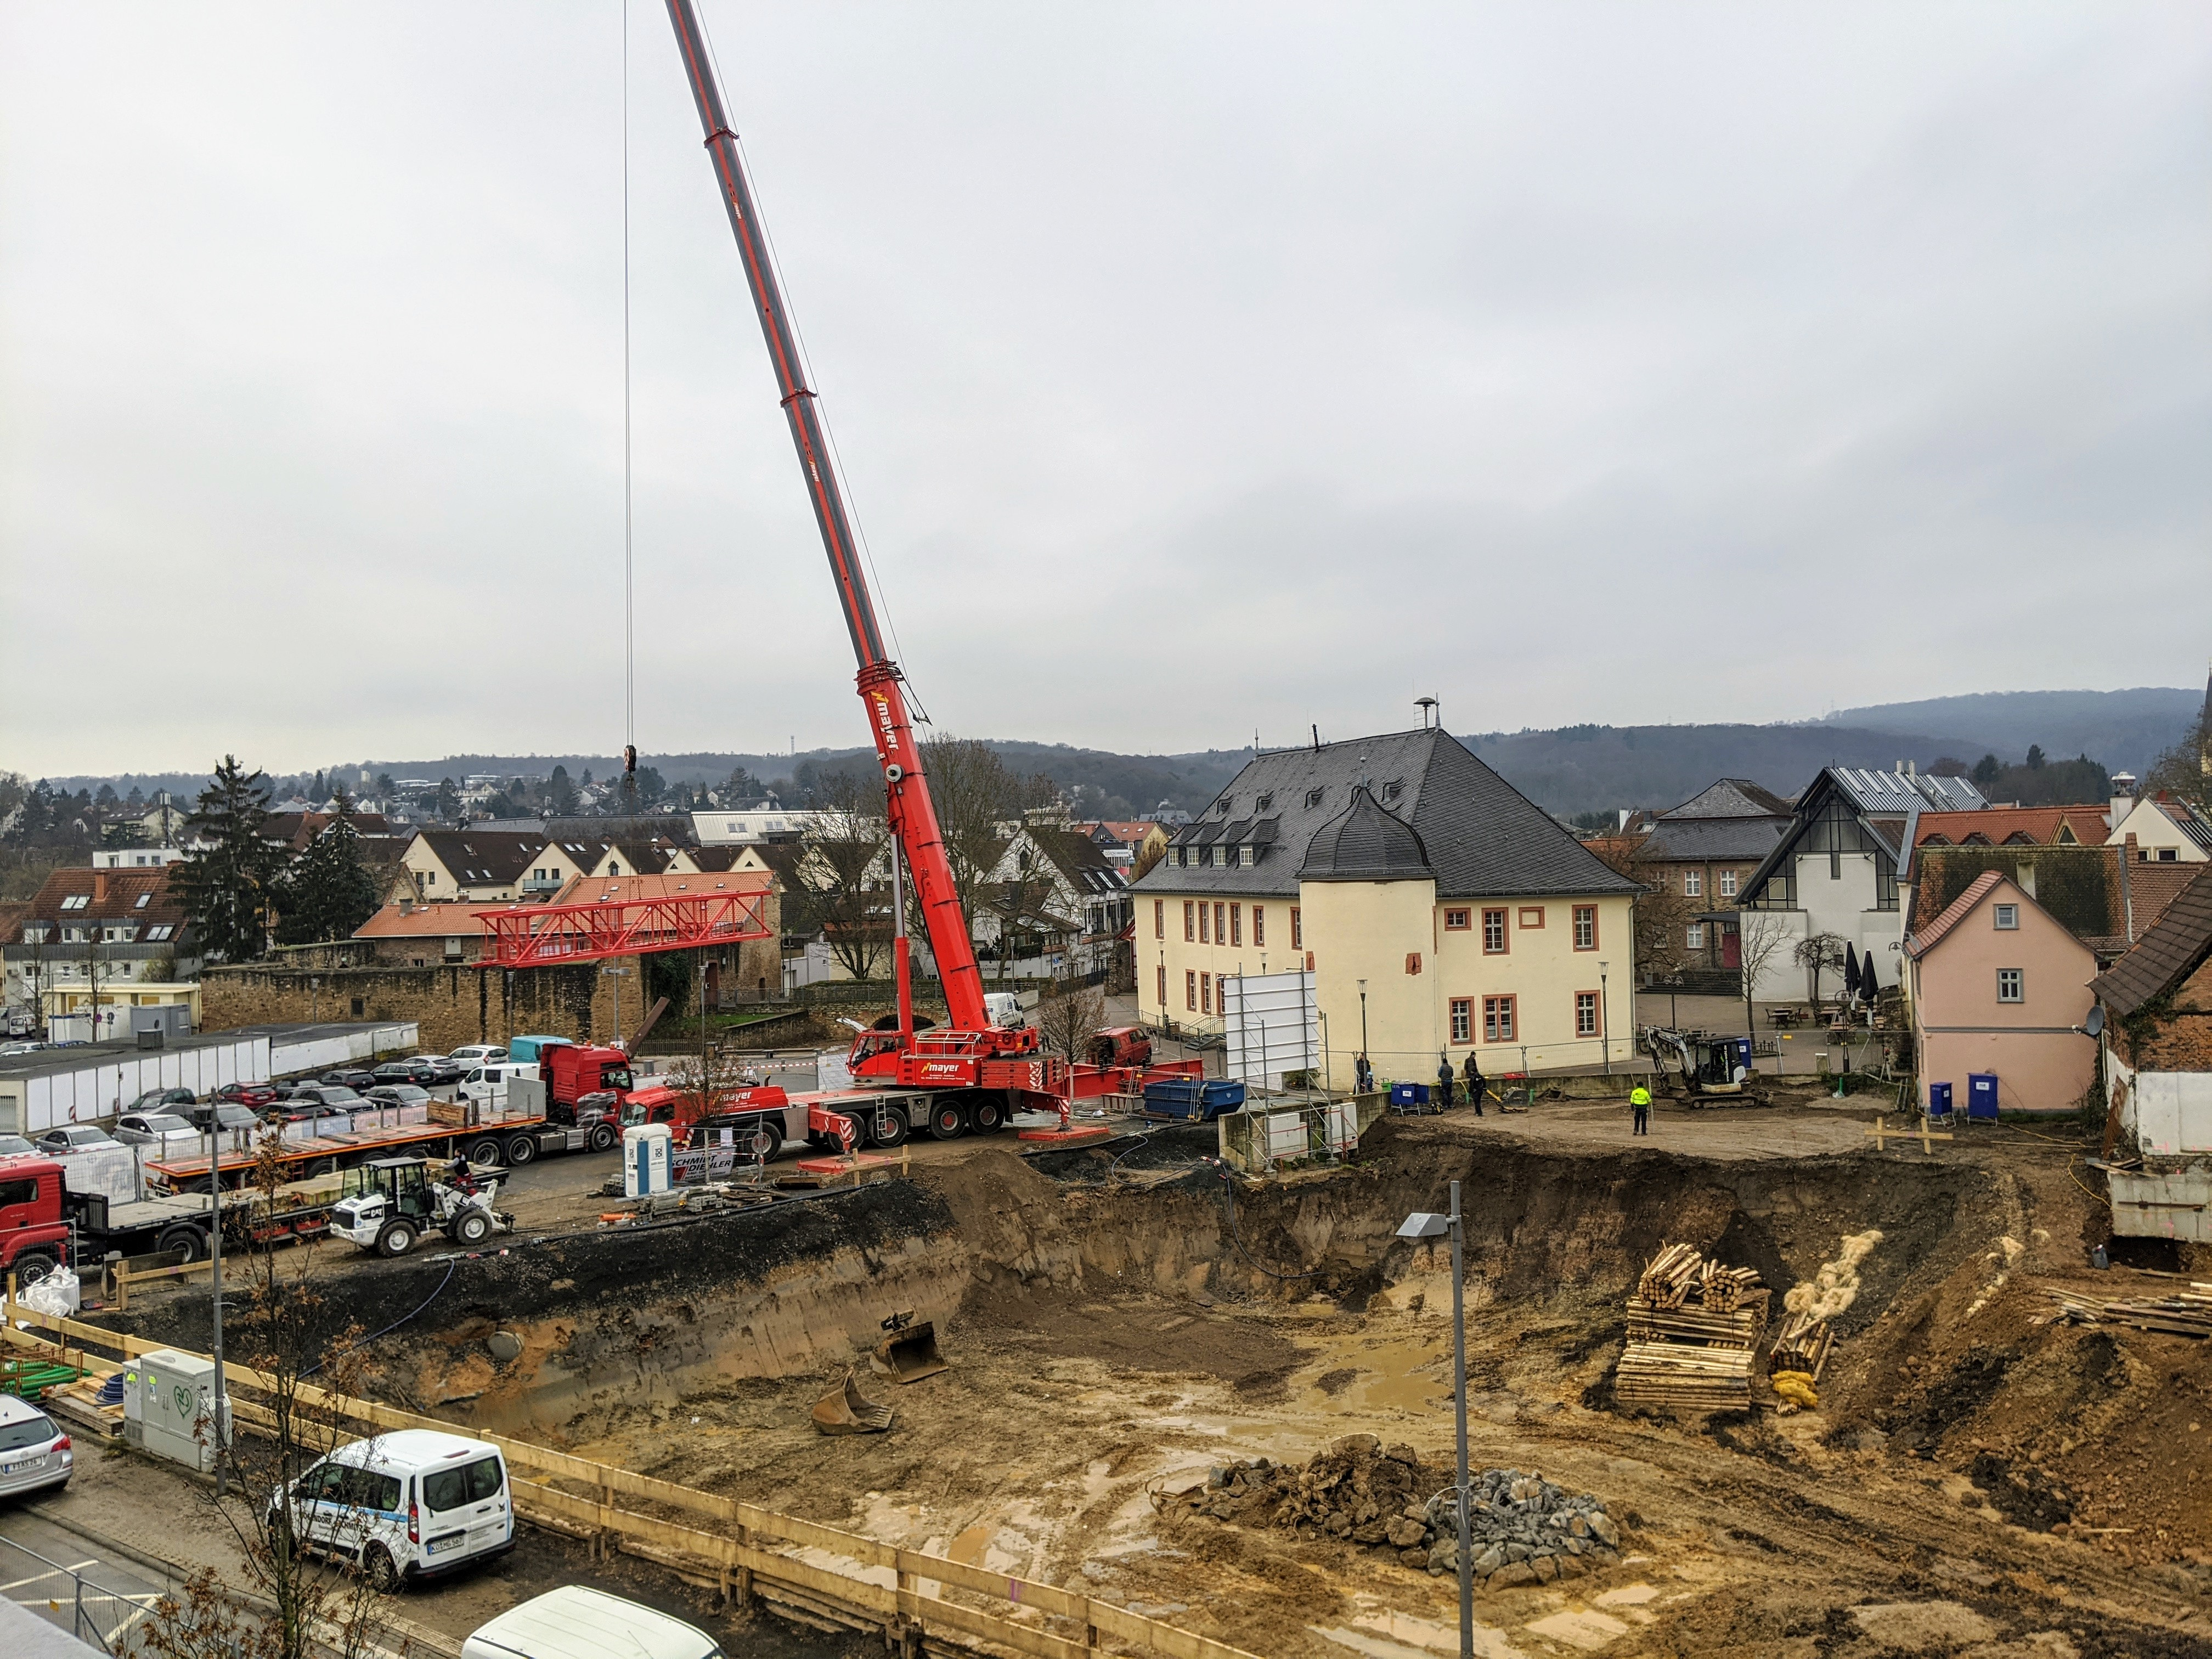 200114 PM Baustelle stadtbuecherei start rohbau